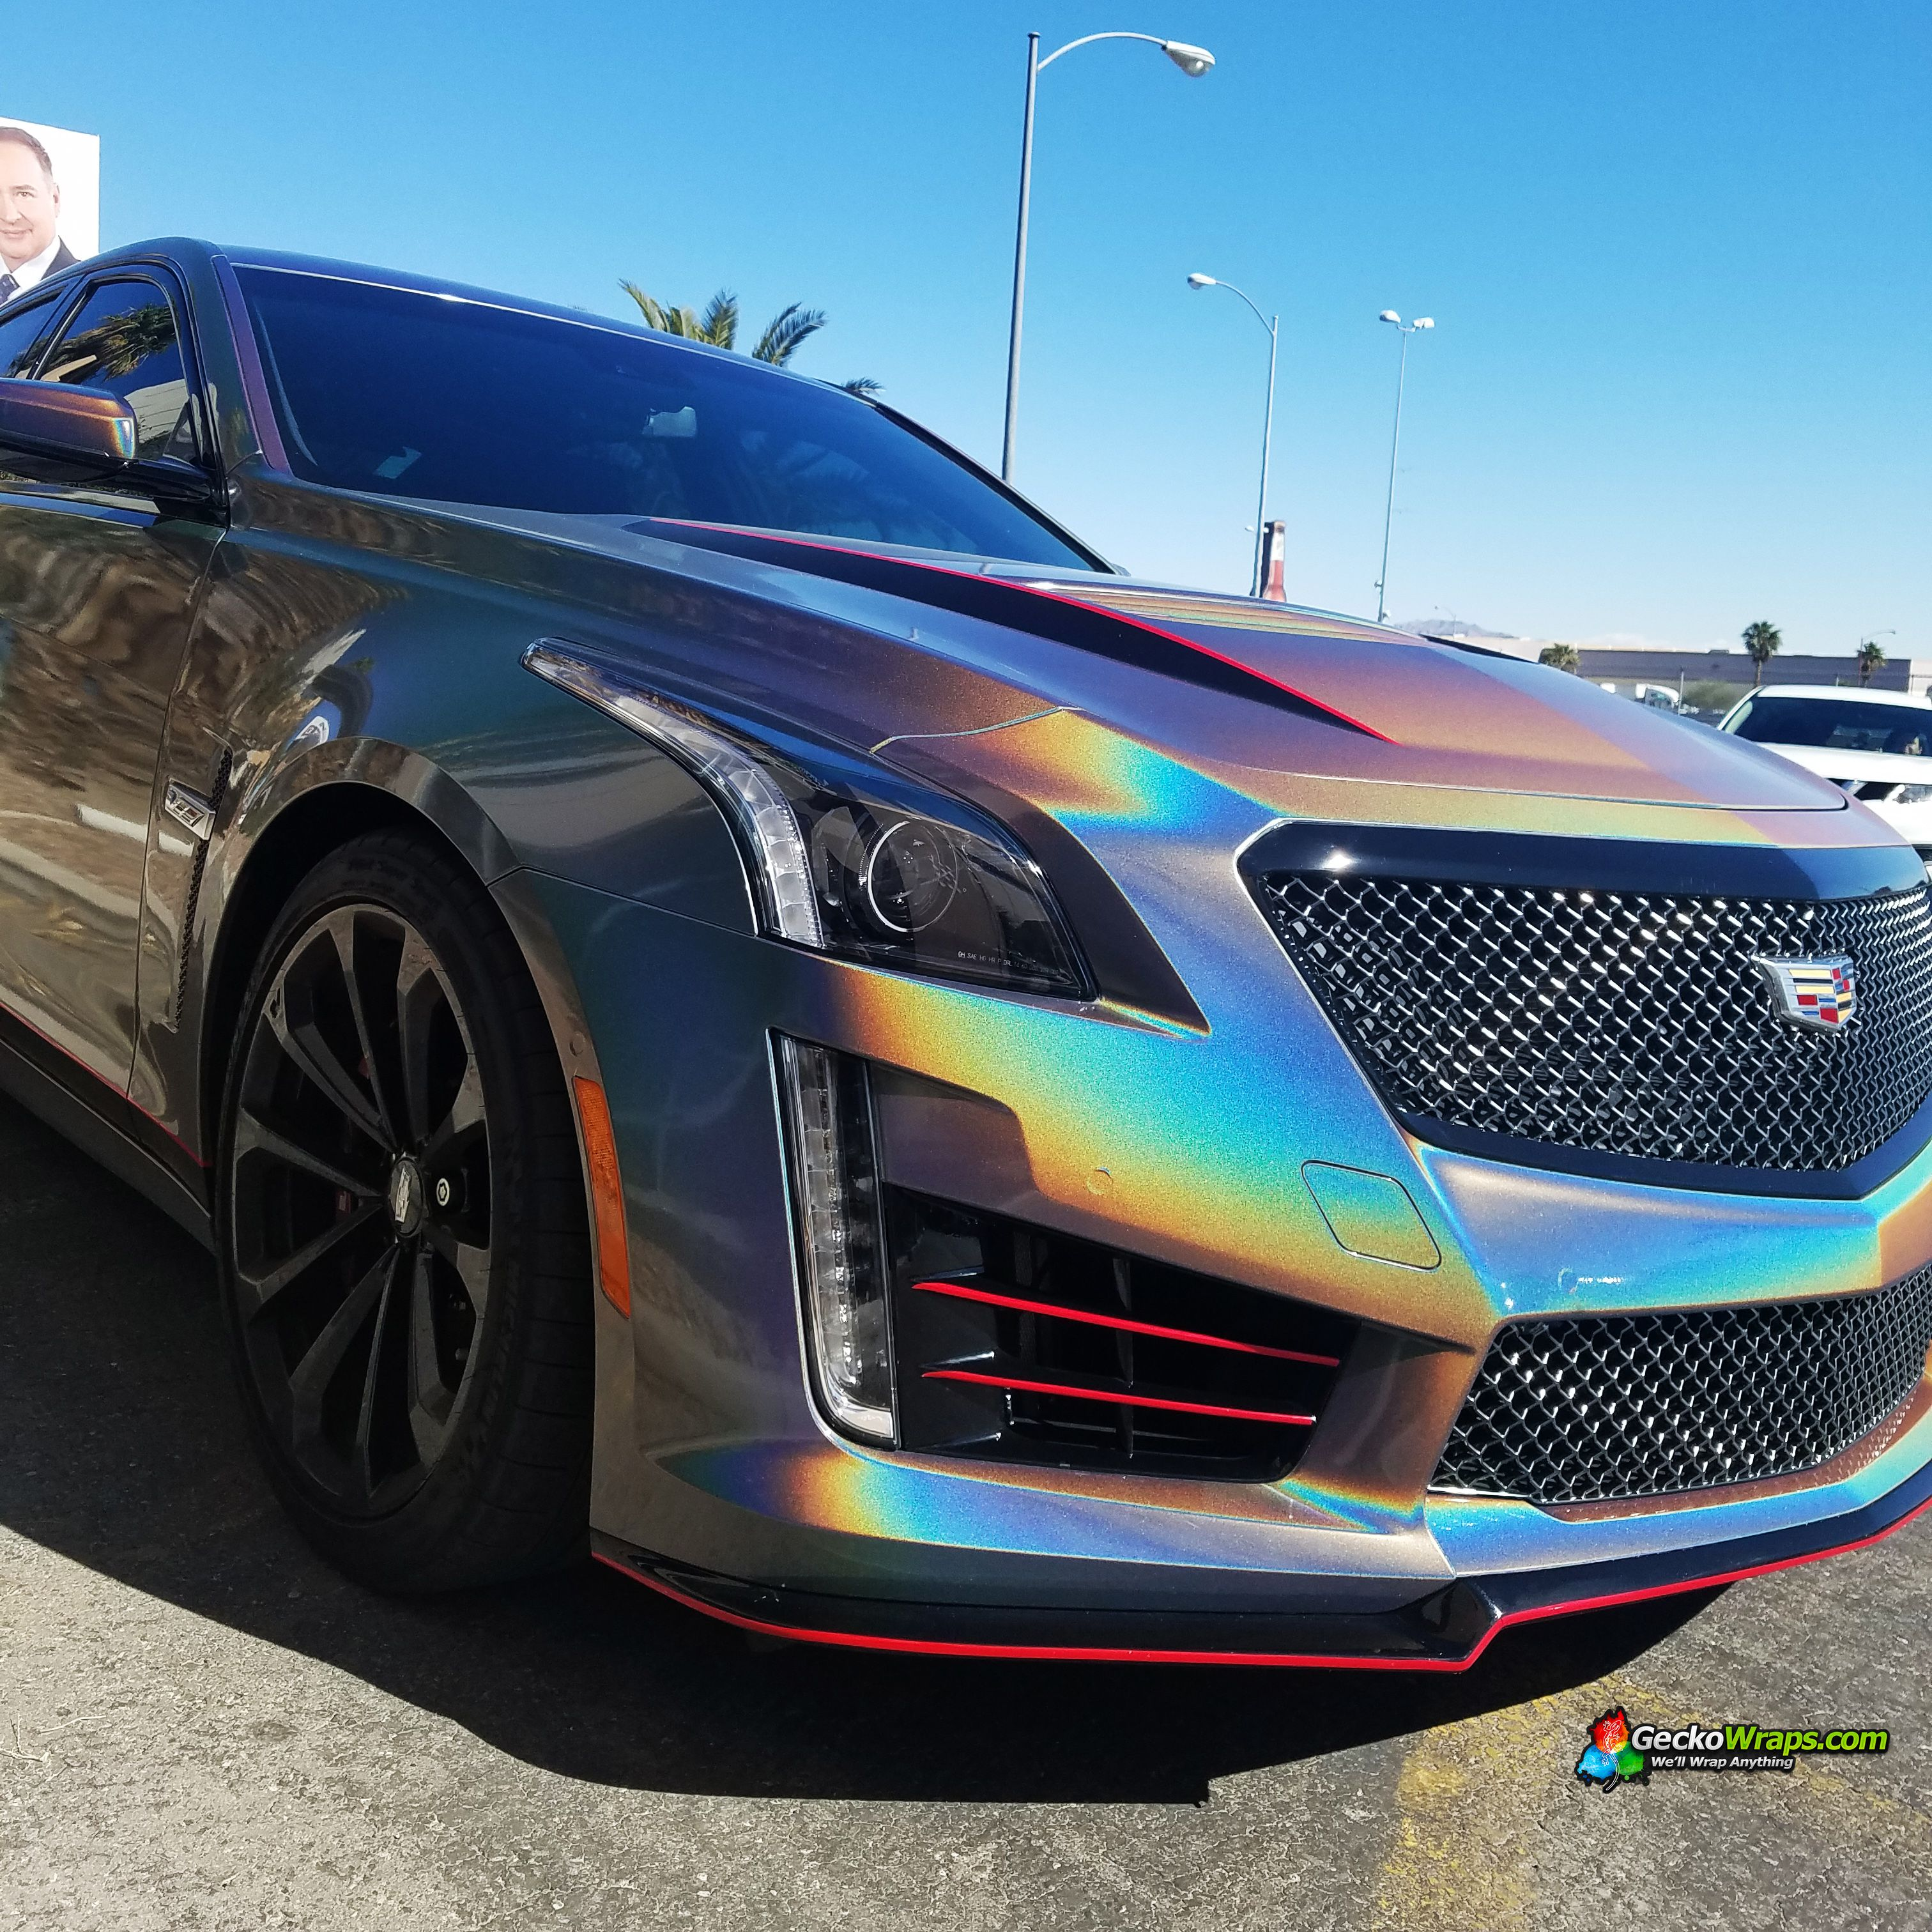 2017 Cadillac Cts V Review: Pin On Vehicle Wraps, Car Wraps, Building Wraps And More